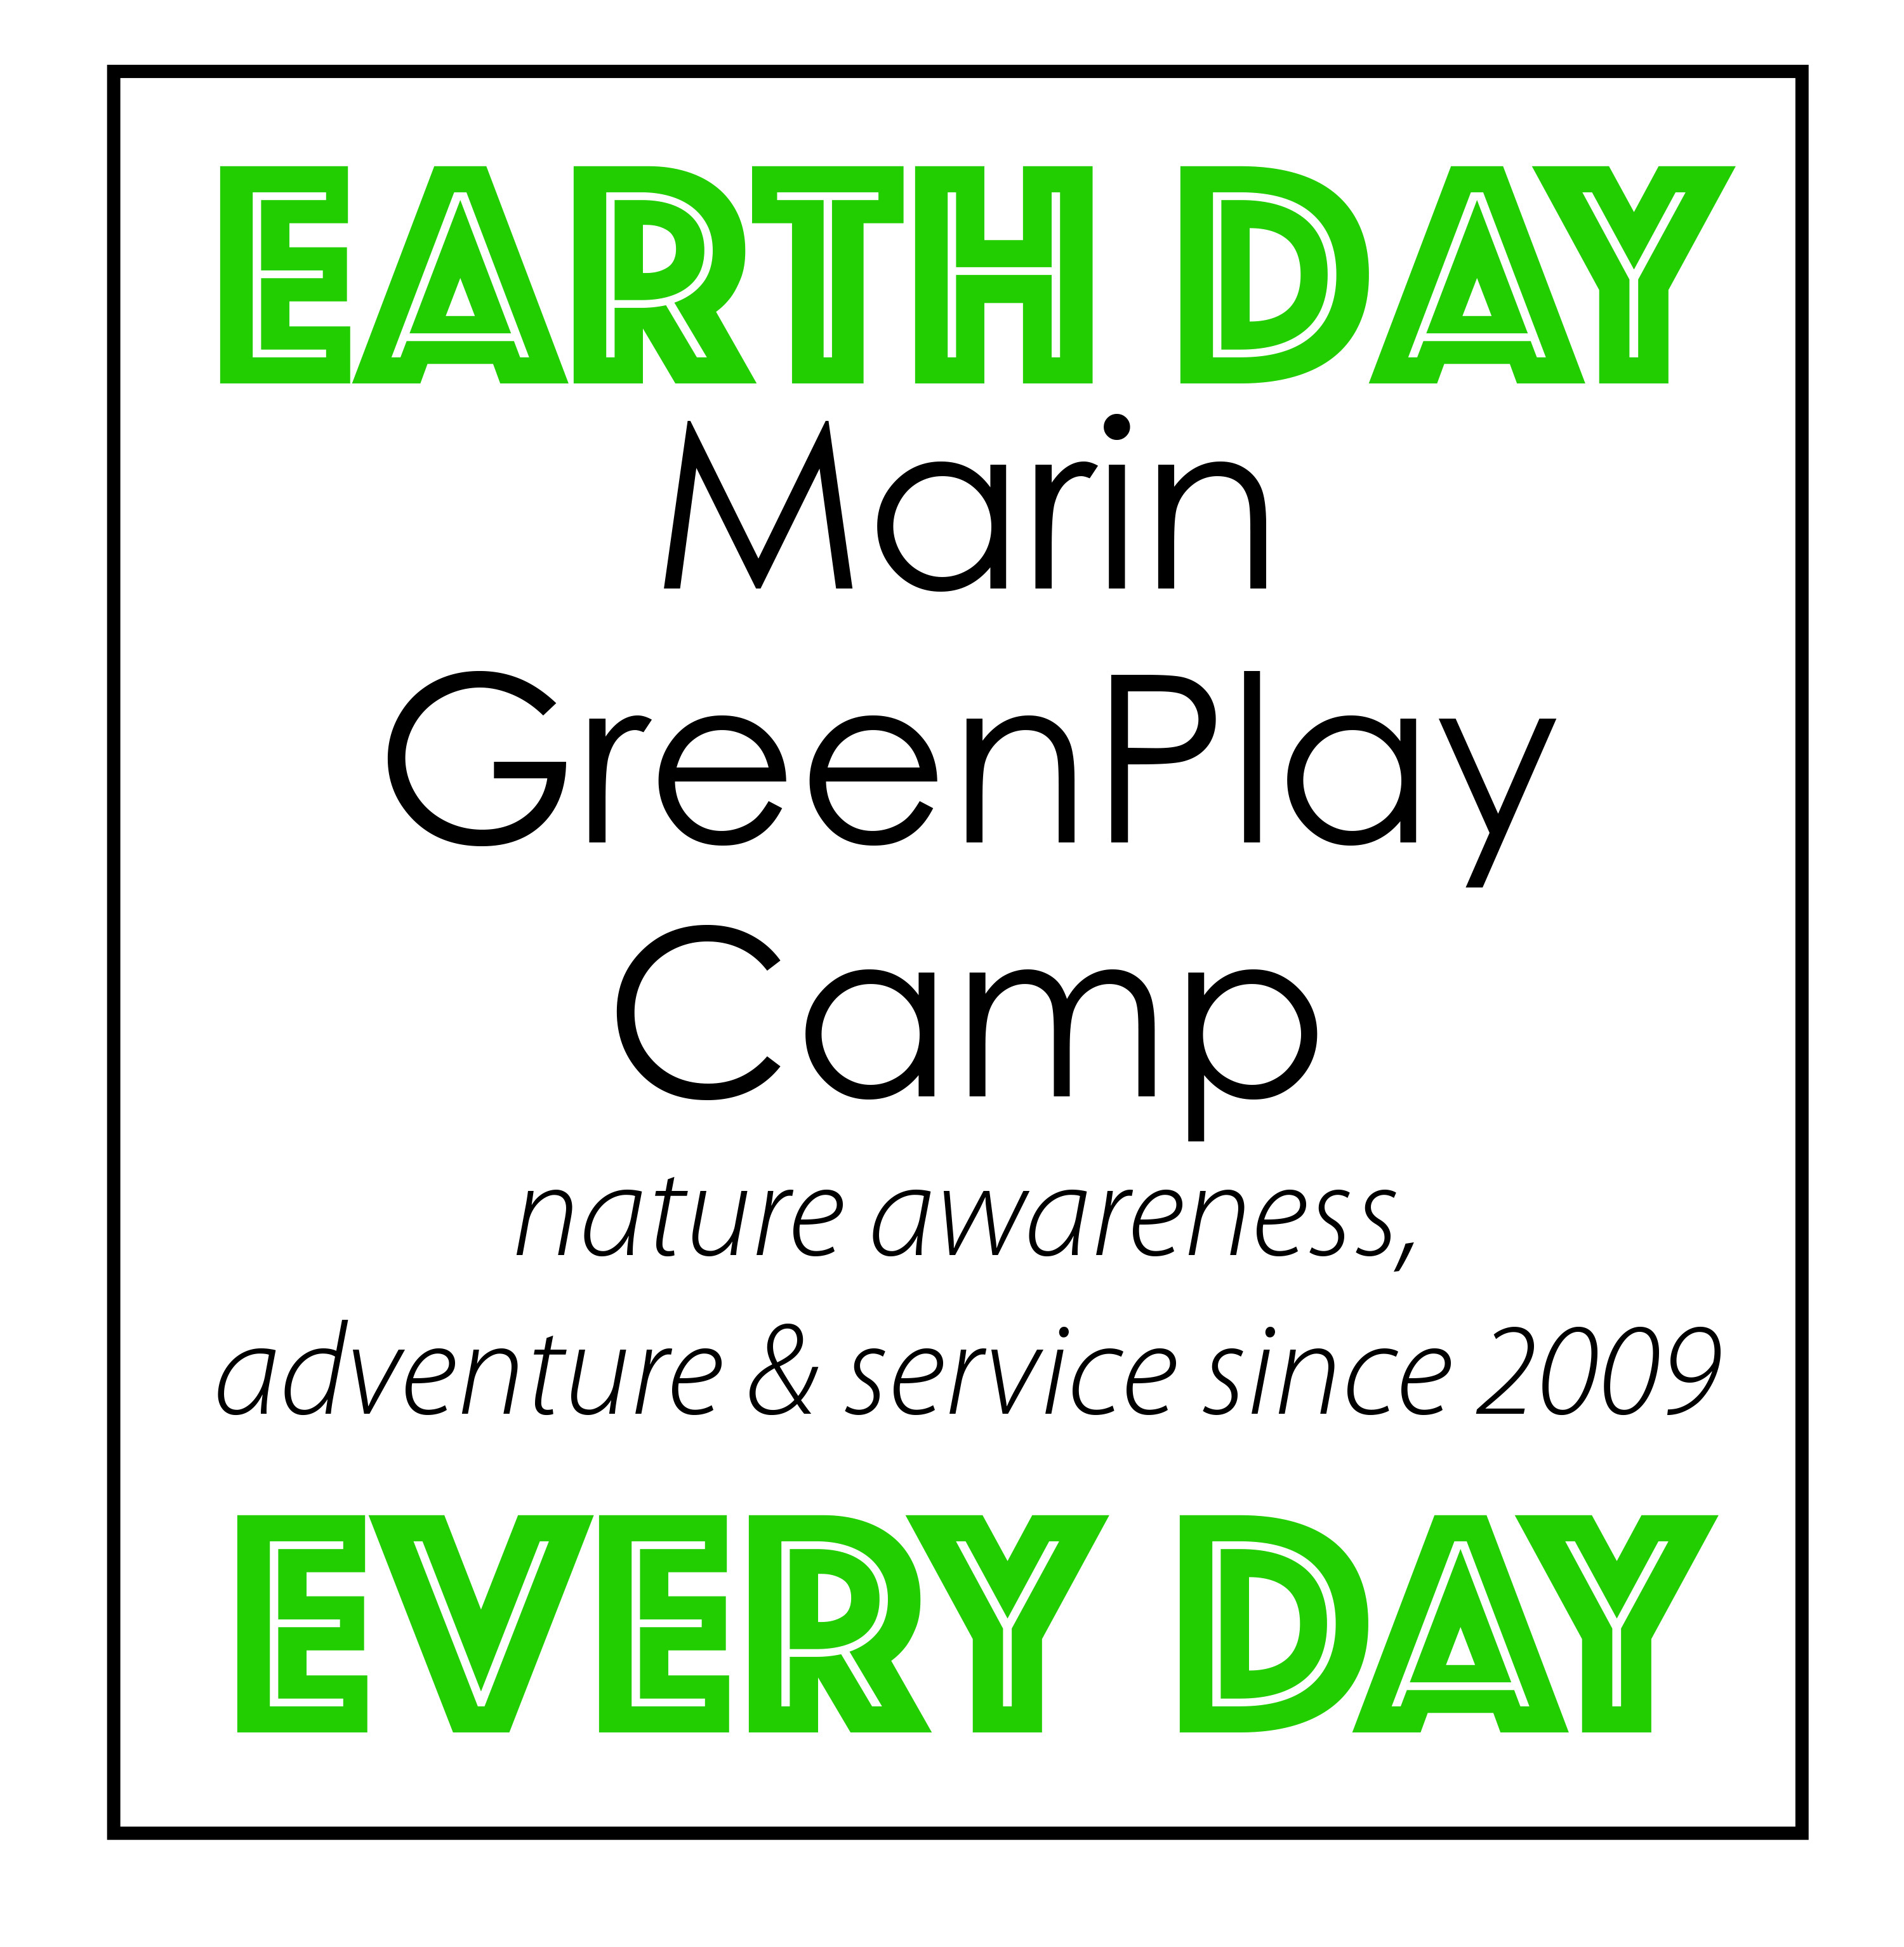 Nature camp guide in mill valley ca united states marin greenplay camp 1betcityfo Images